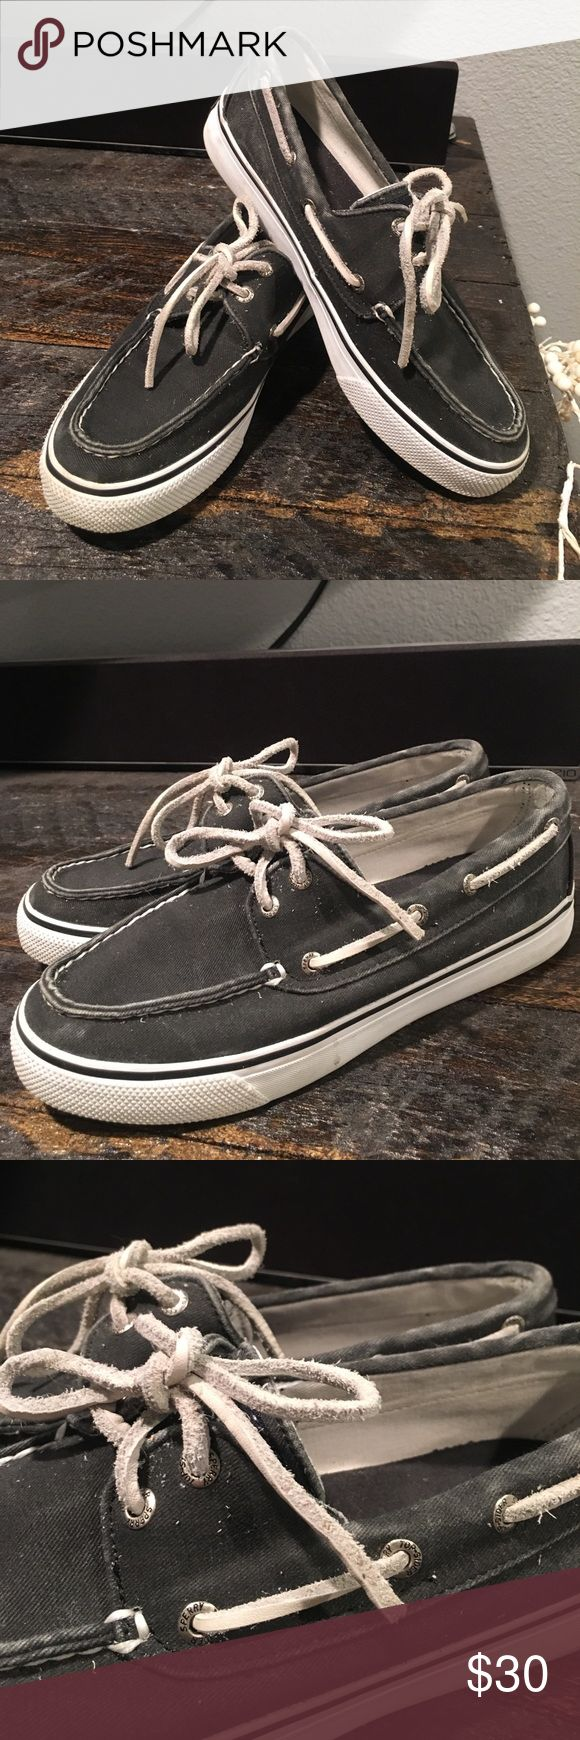 Grey and white sperry's! Sperry boat shoes in a neutral color. Make me an offer! Sperry Top-Sider Shoes Flats & Loafers